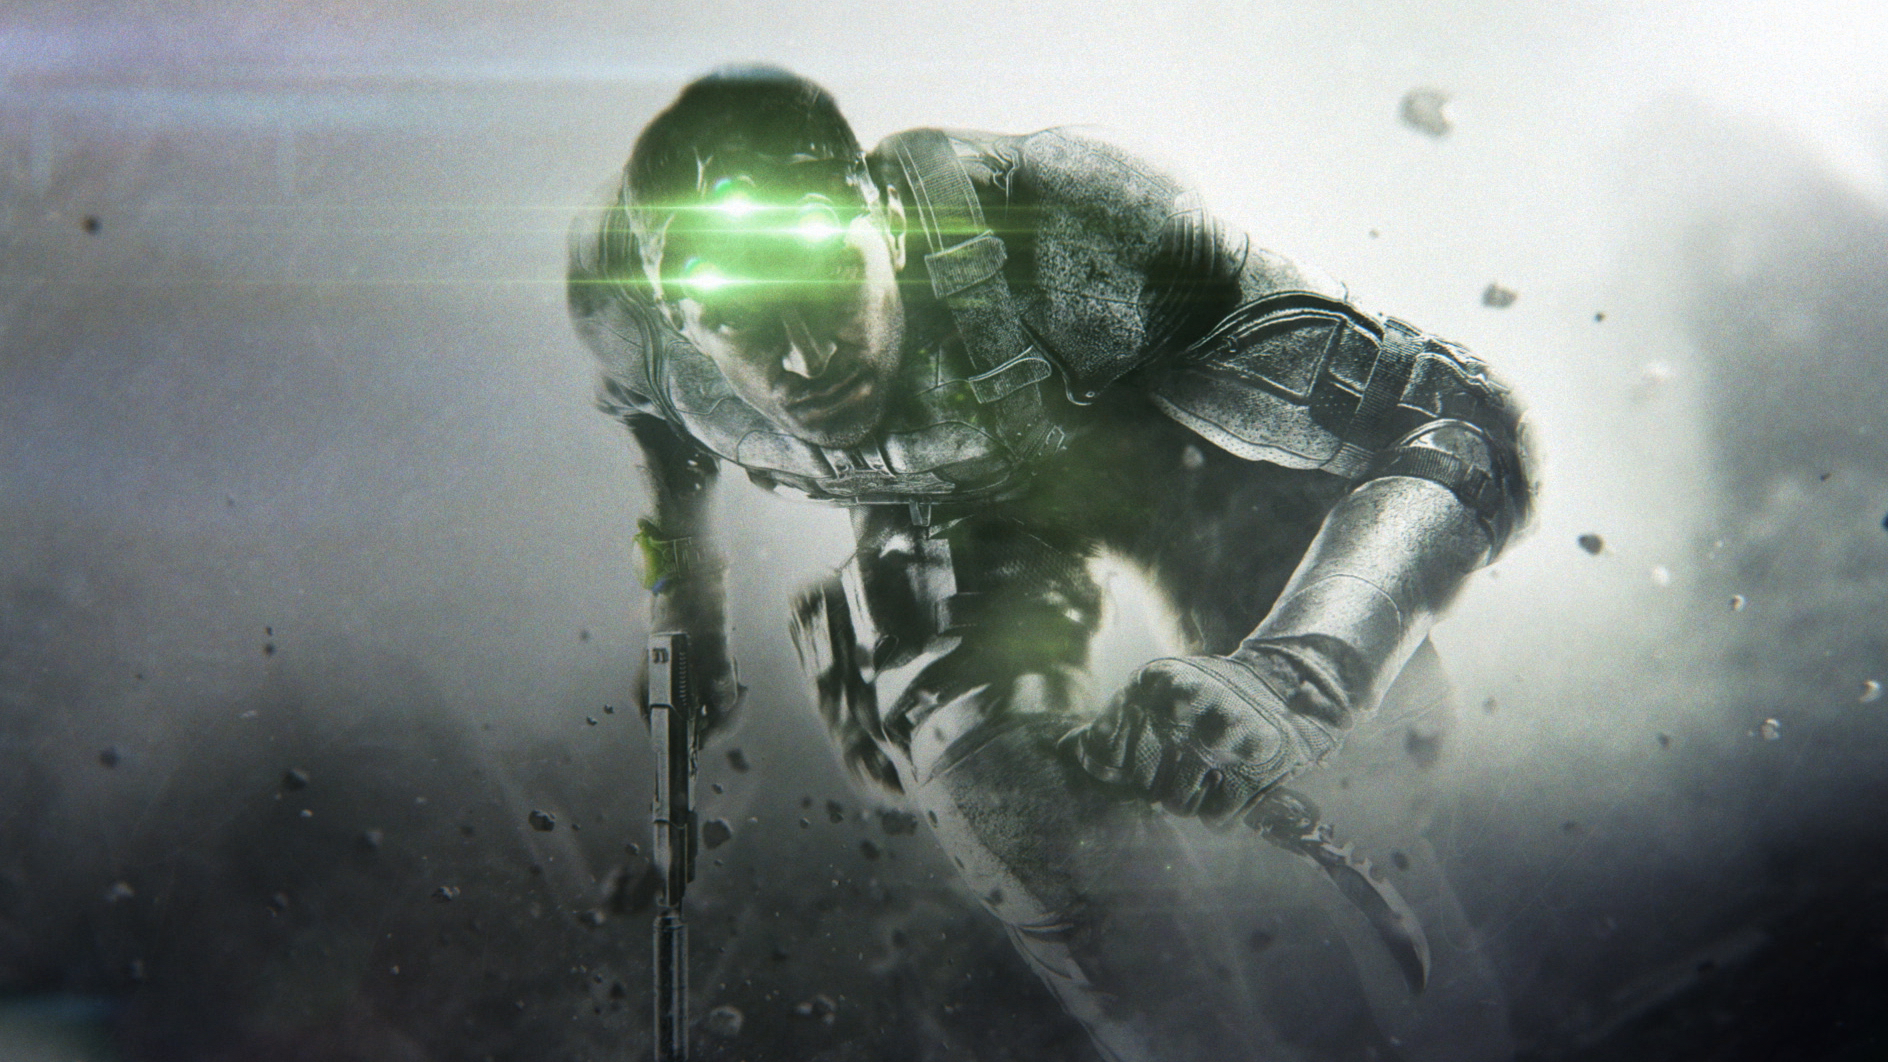 E3 2017: Ubisoft CEO says they haven't forgotten Splinter Cell